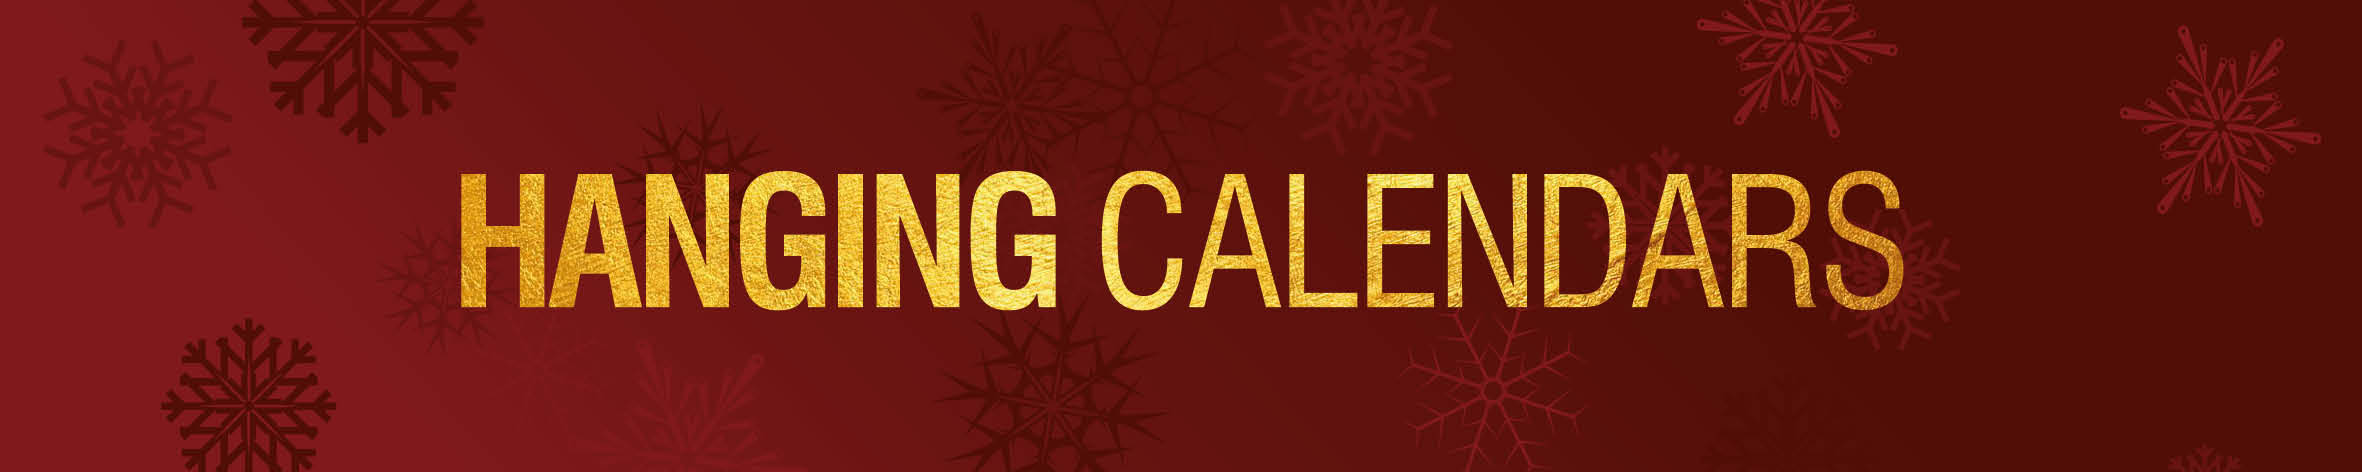 Christmas Hanging Calendars Banner 19